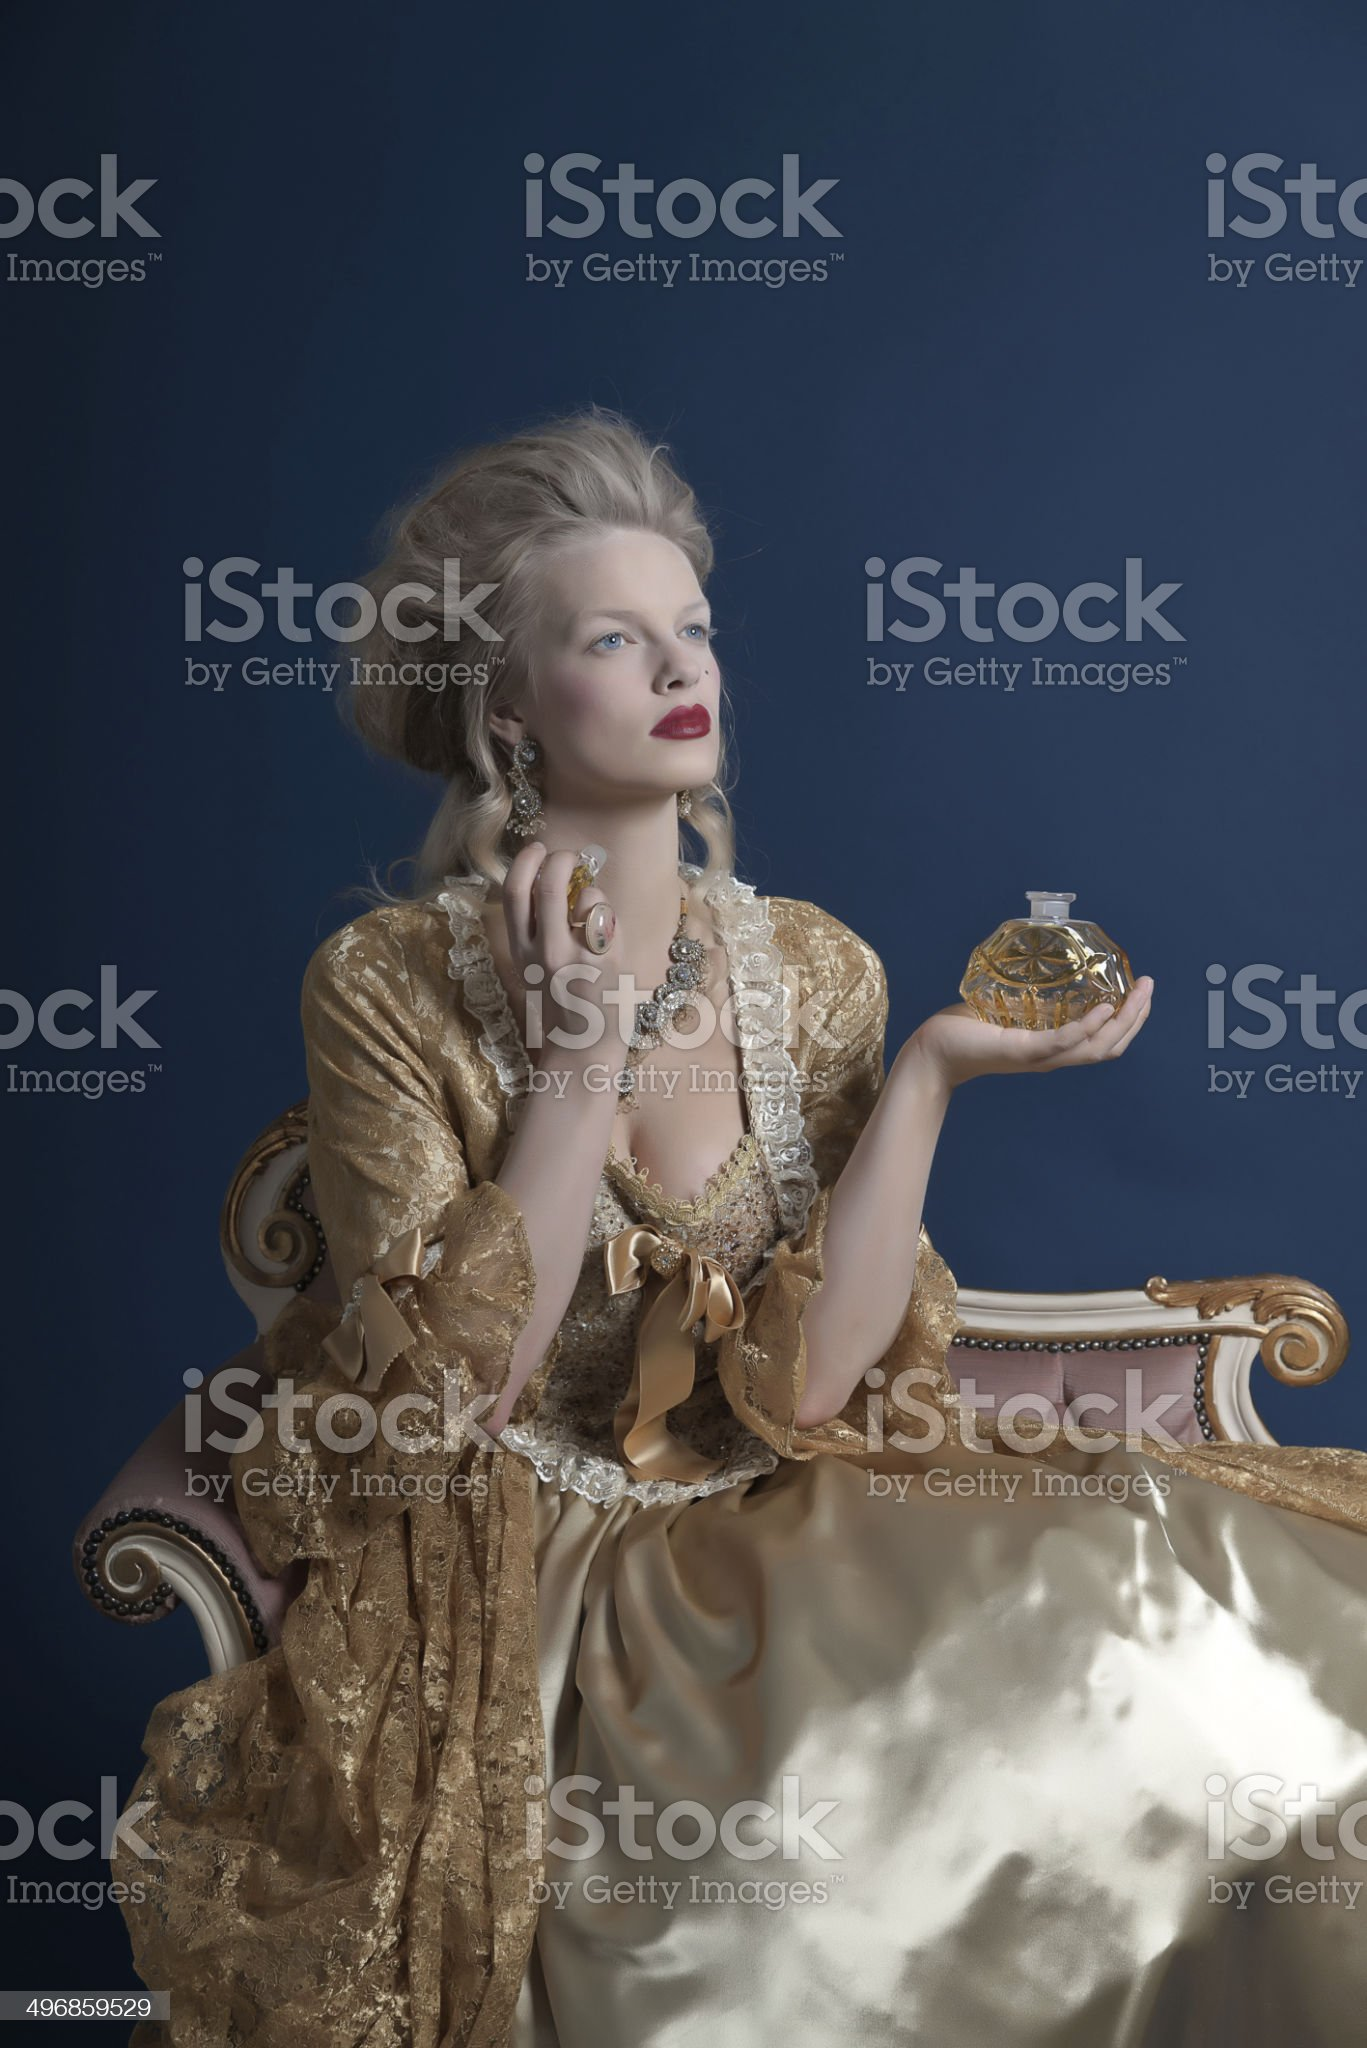 Retro baroque fashion woman wearing gold dress. Holding perfume bottle. royalty-free stock photo